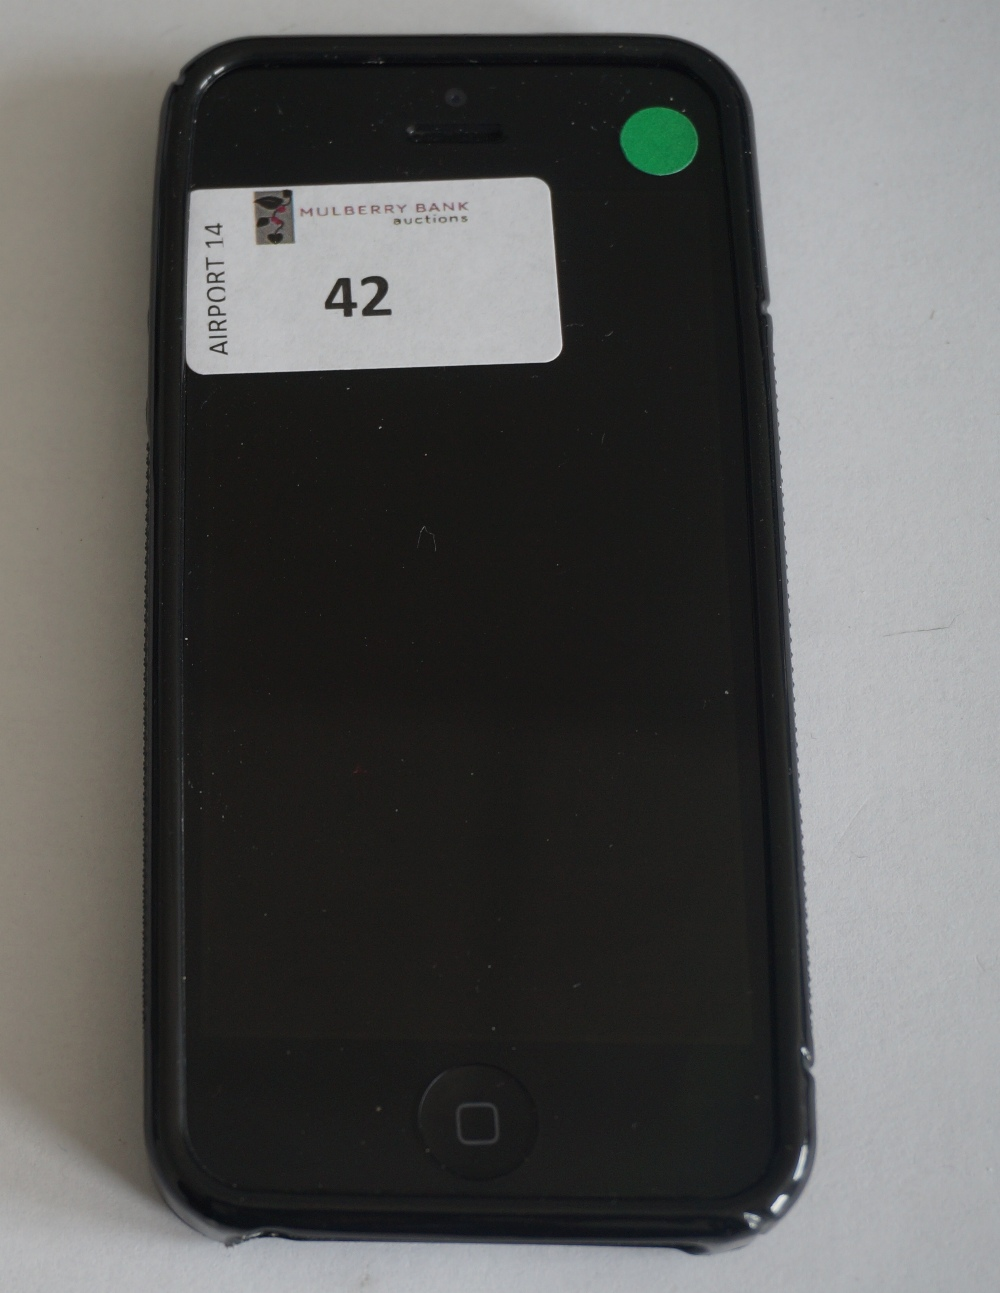 apple iphone 5 32gb model a1429 imei 013410004092629. Black Bedroom Furniture Sets. Home Design Ideas